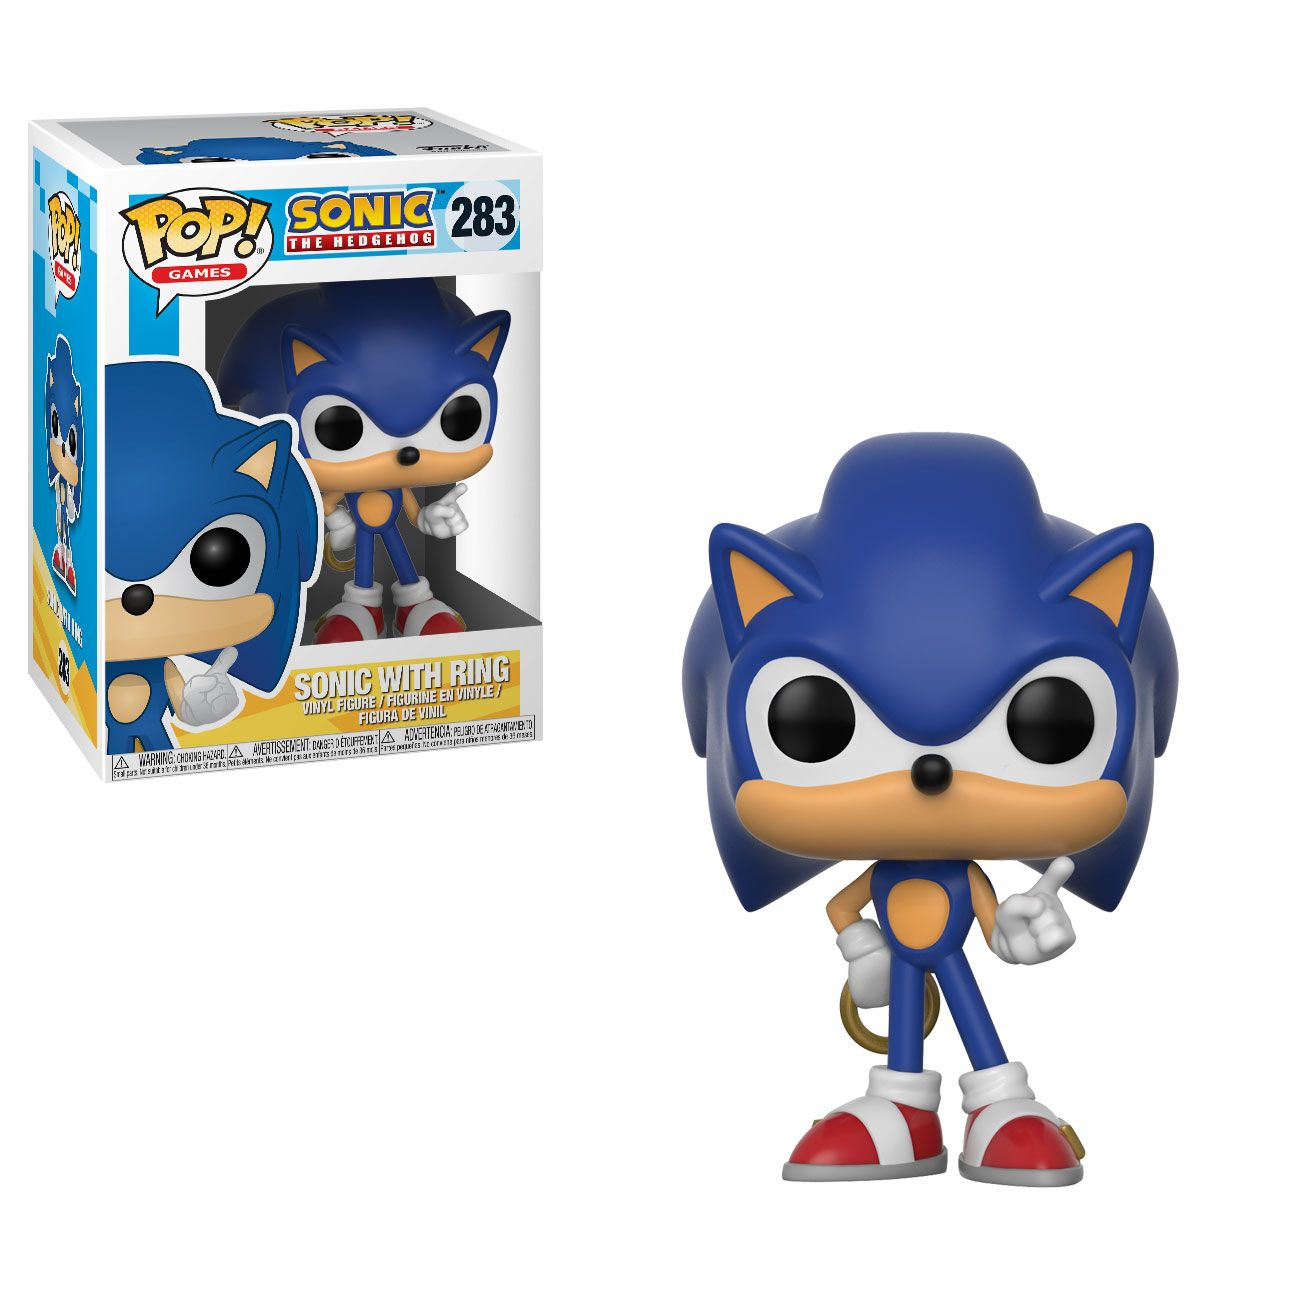 Sonic with Ring #283 - Funko Pop! Games